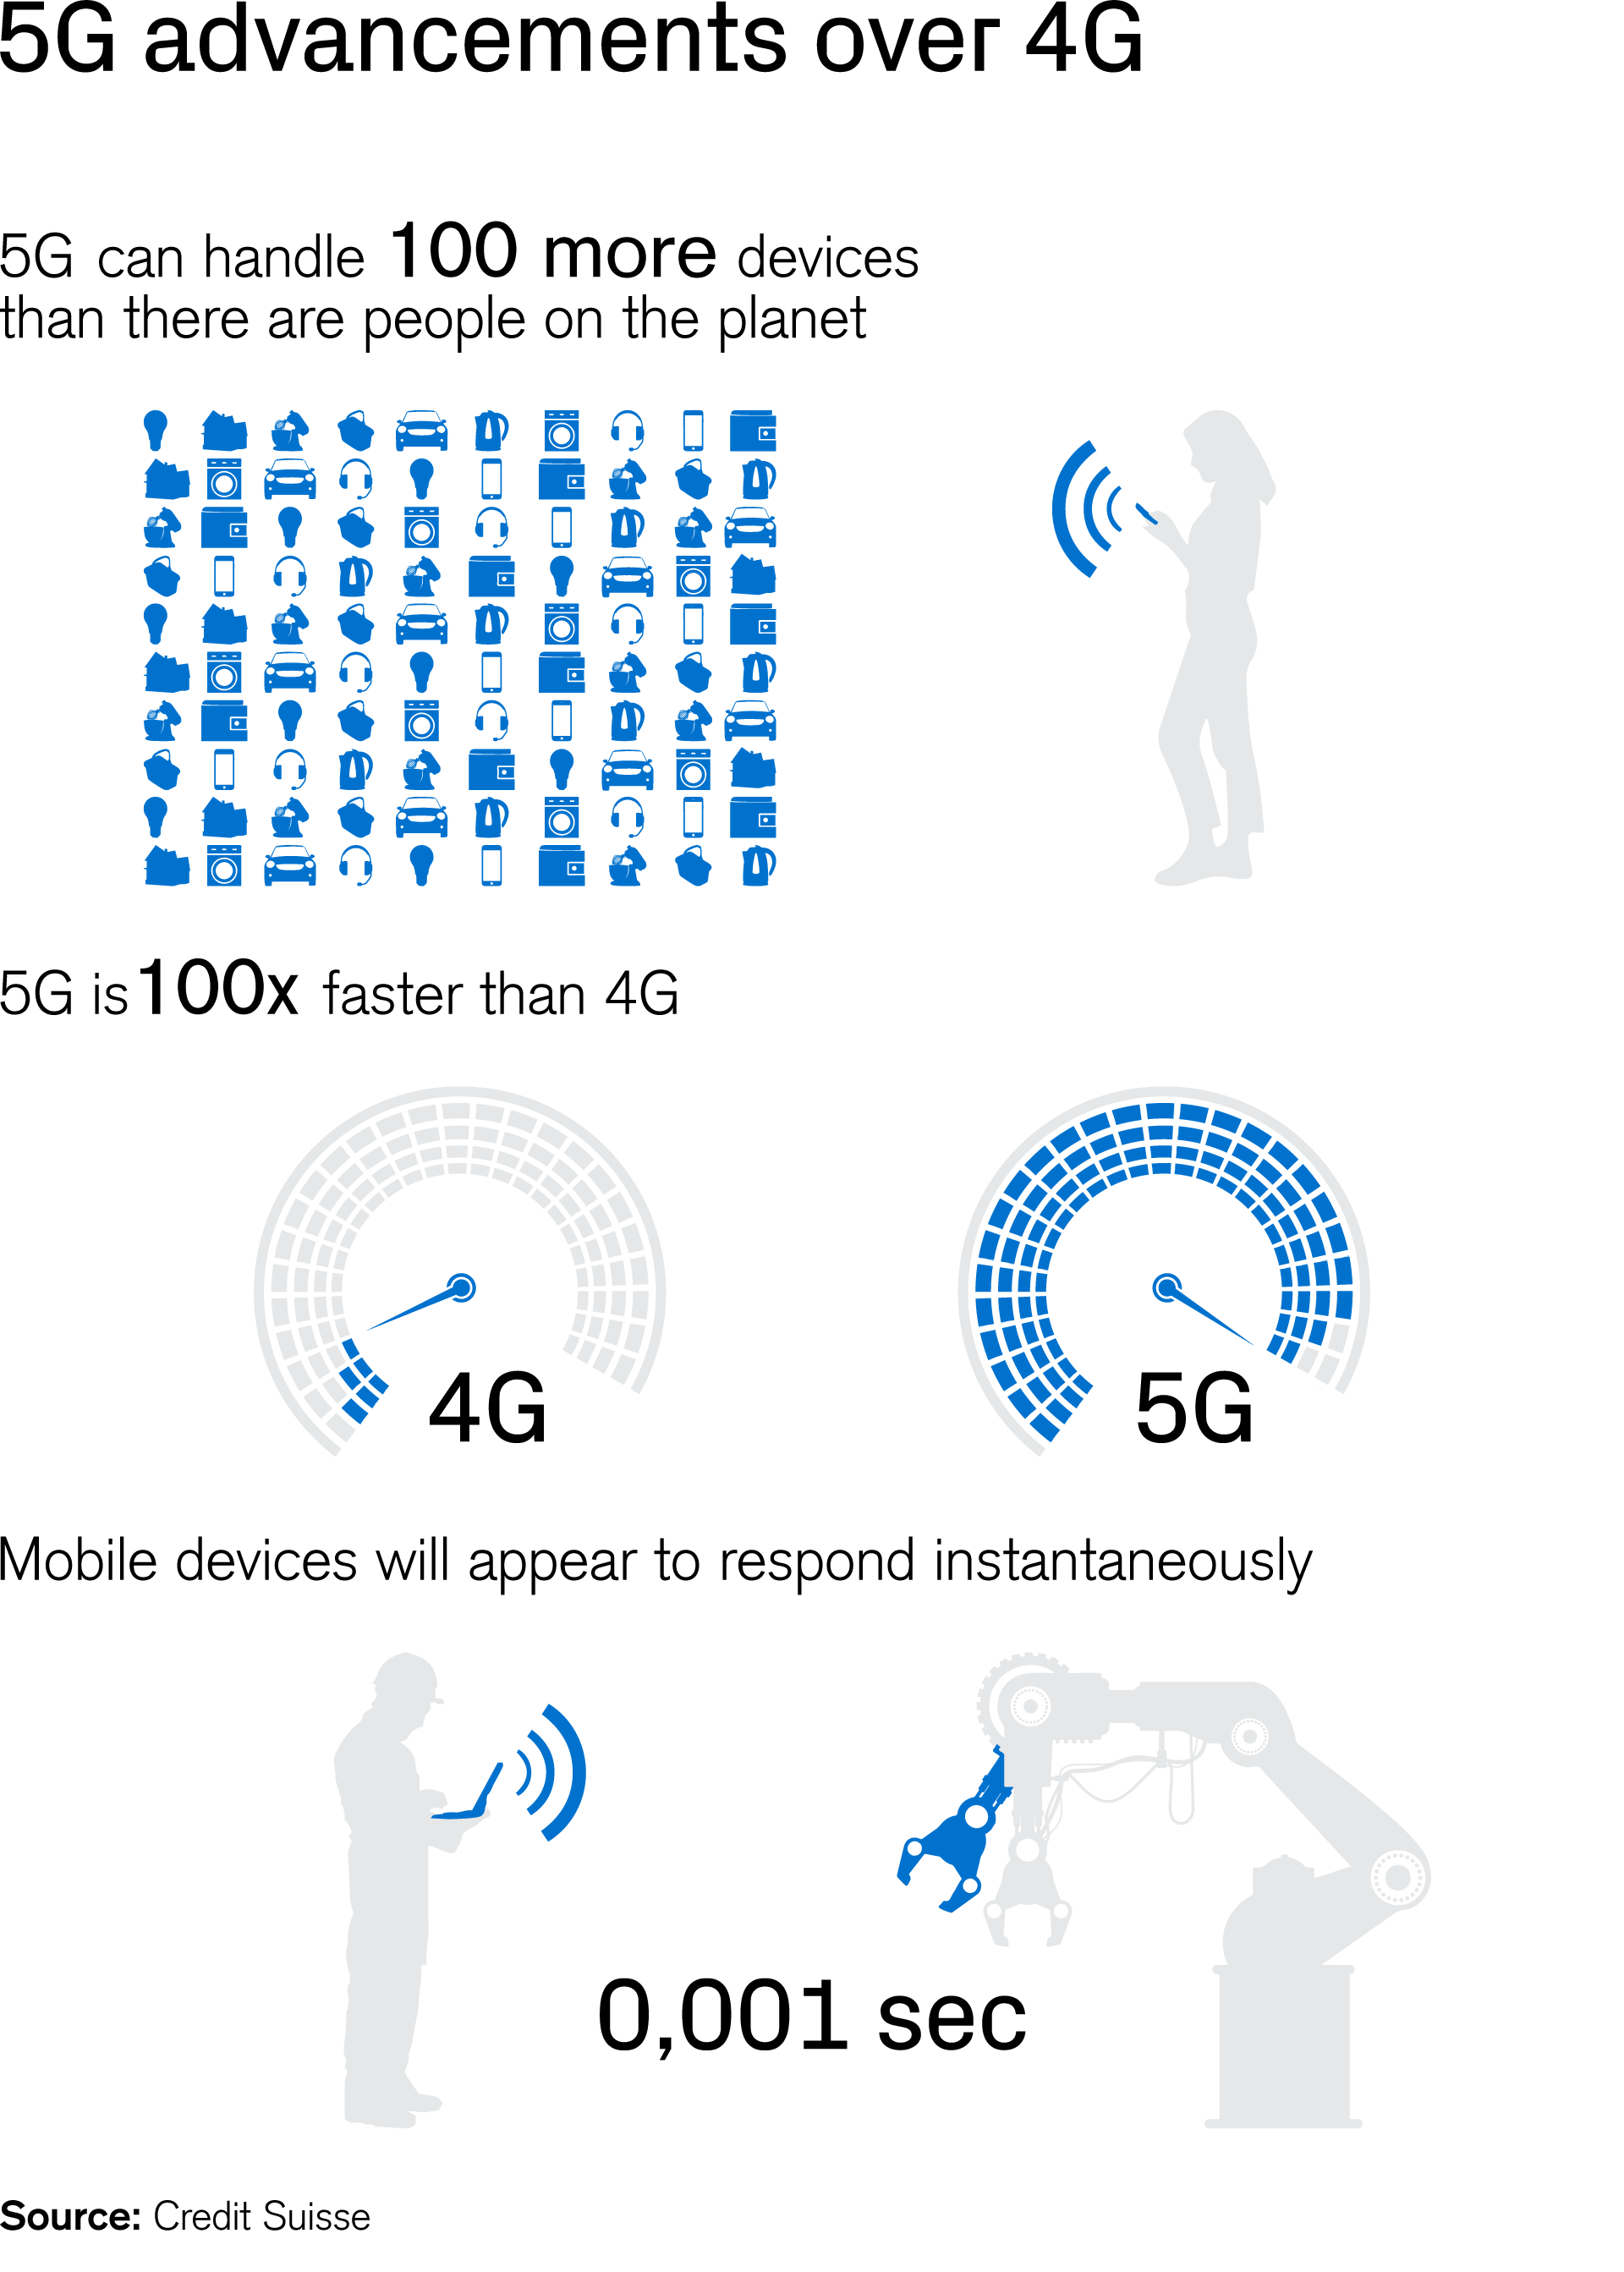 5G advancements over 4G